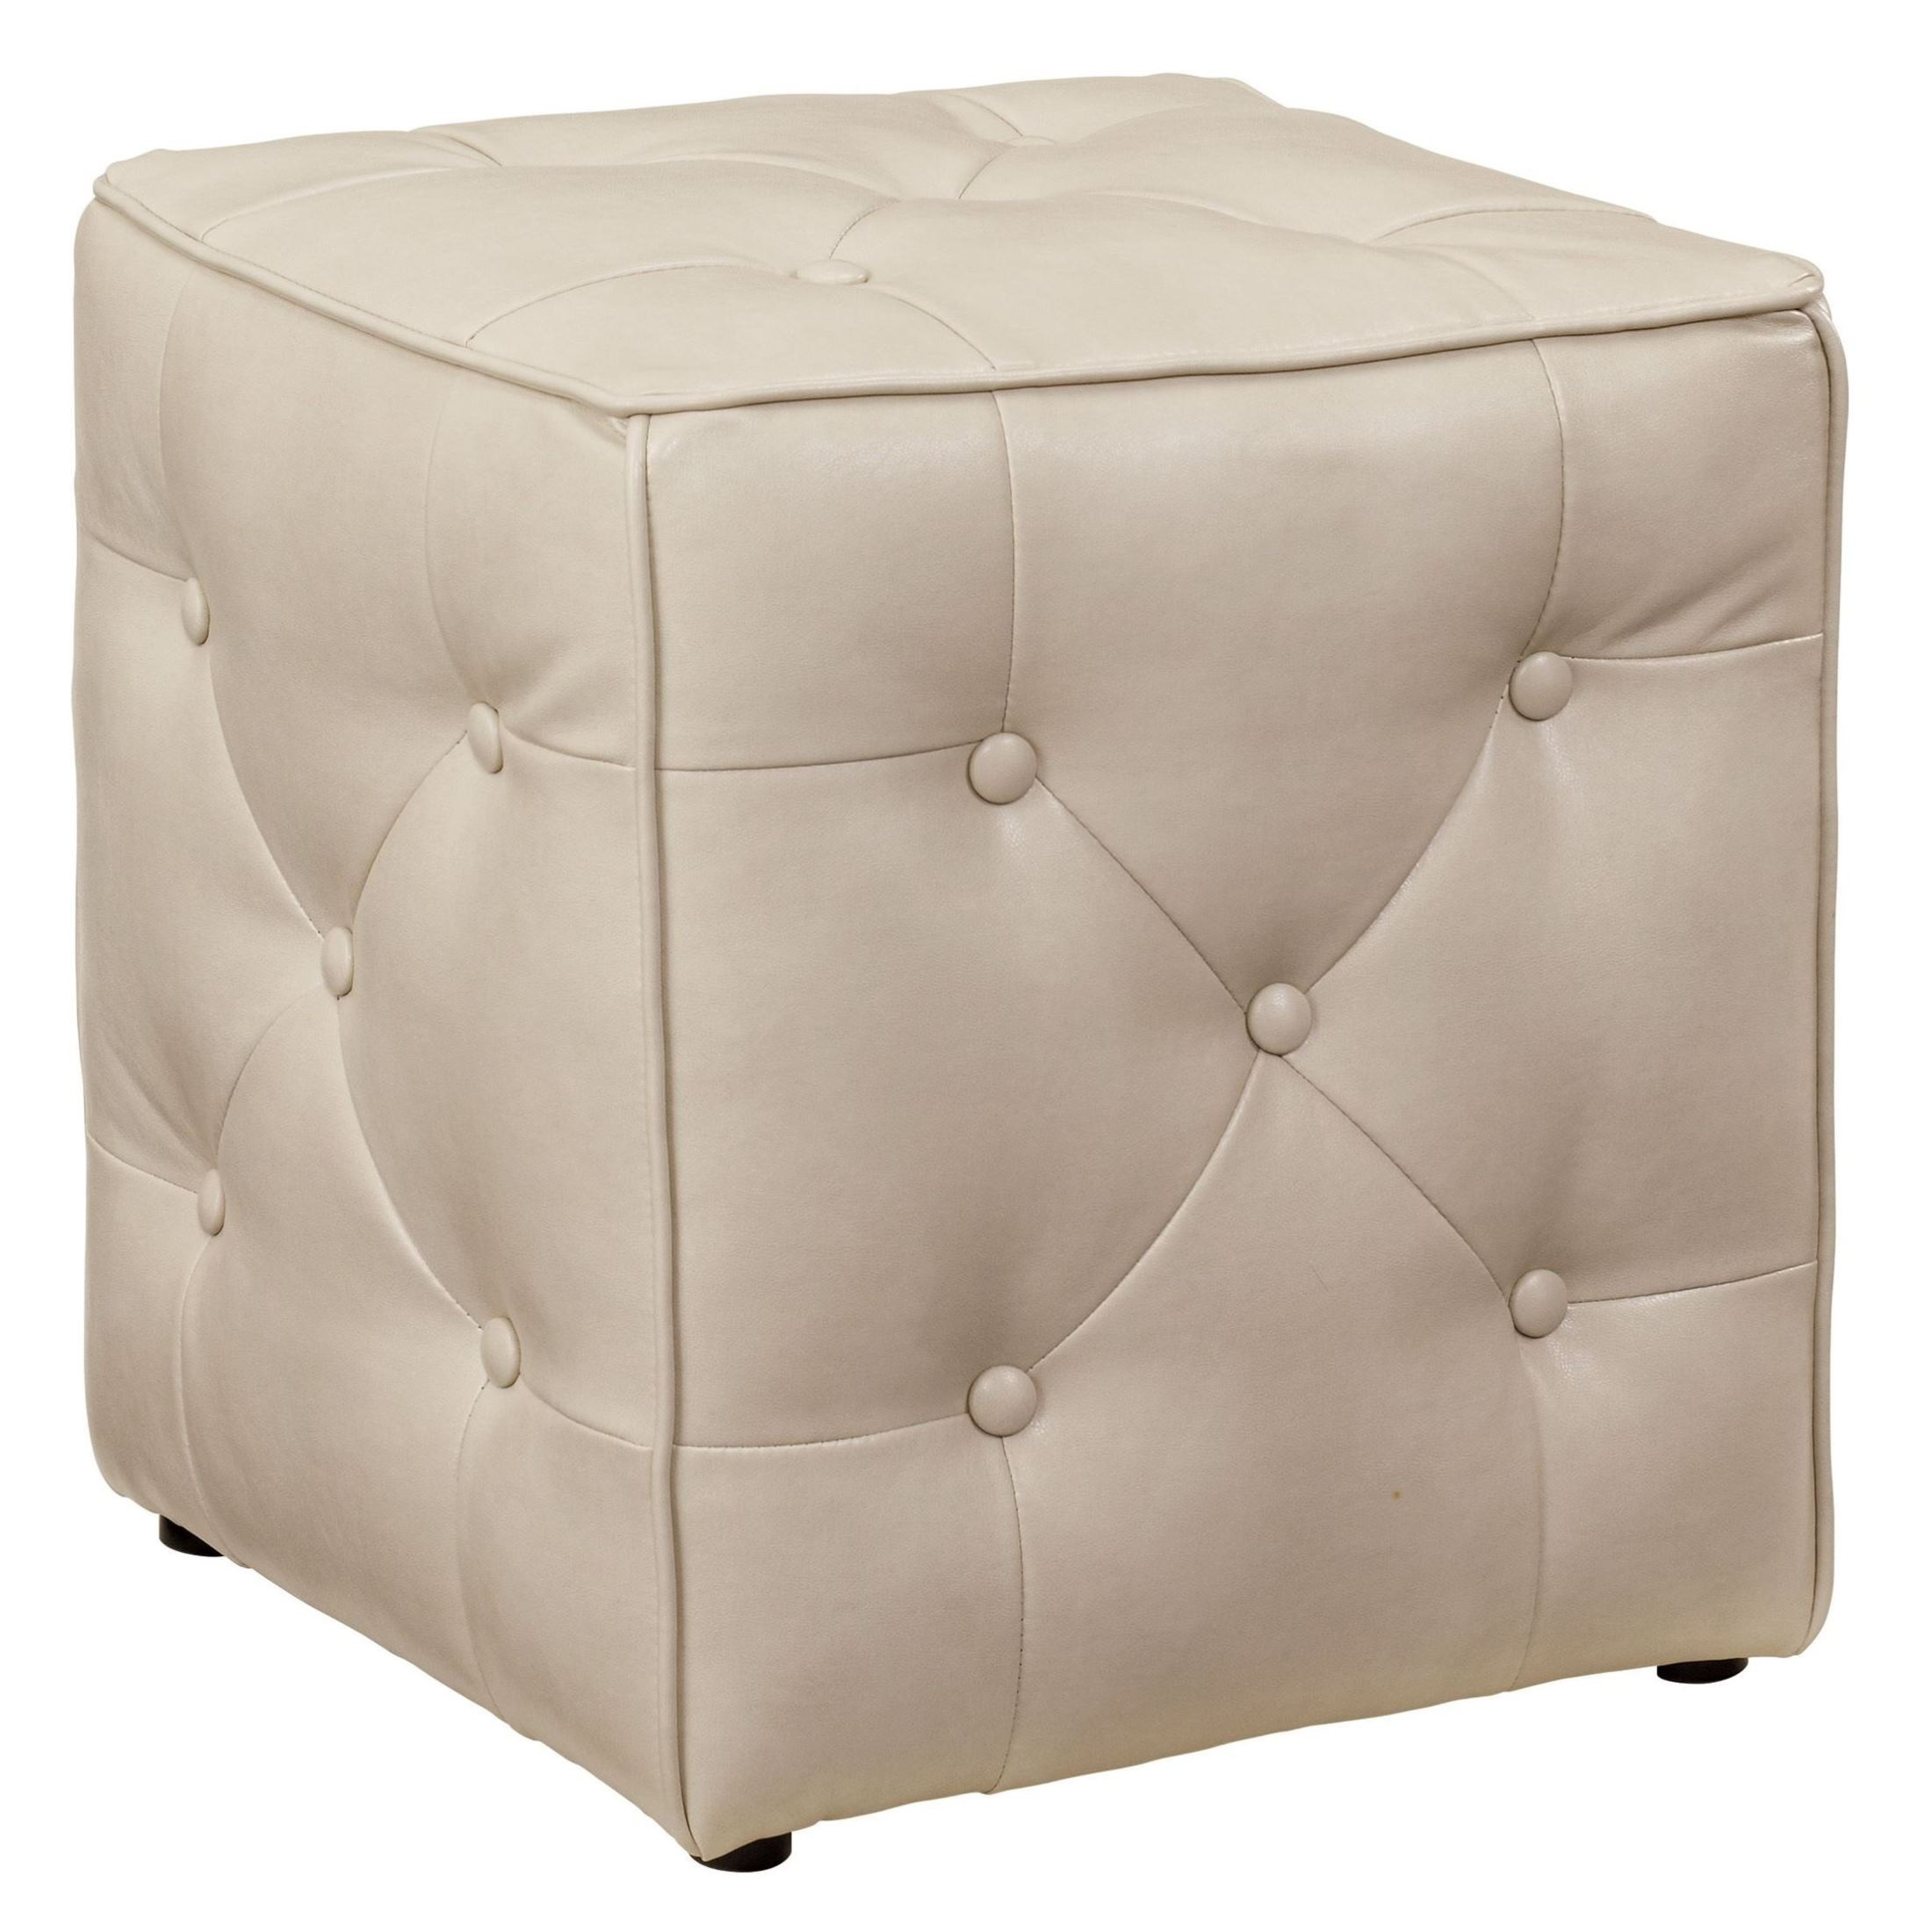 jive taupe accent ottoman from ashley 4740113 coleman furniture. Black Bedroom Furniture Sets. Home Design Ideas